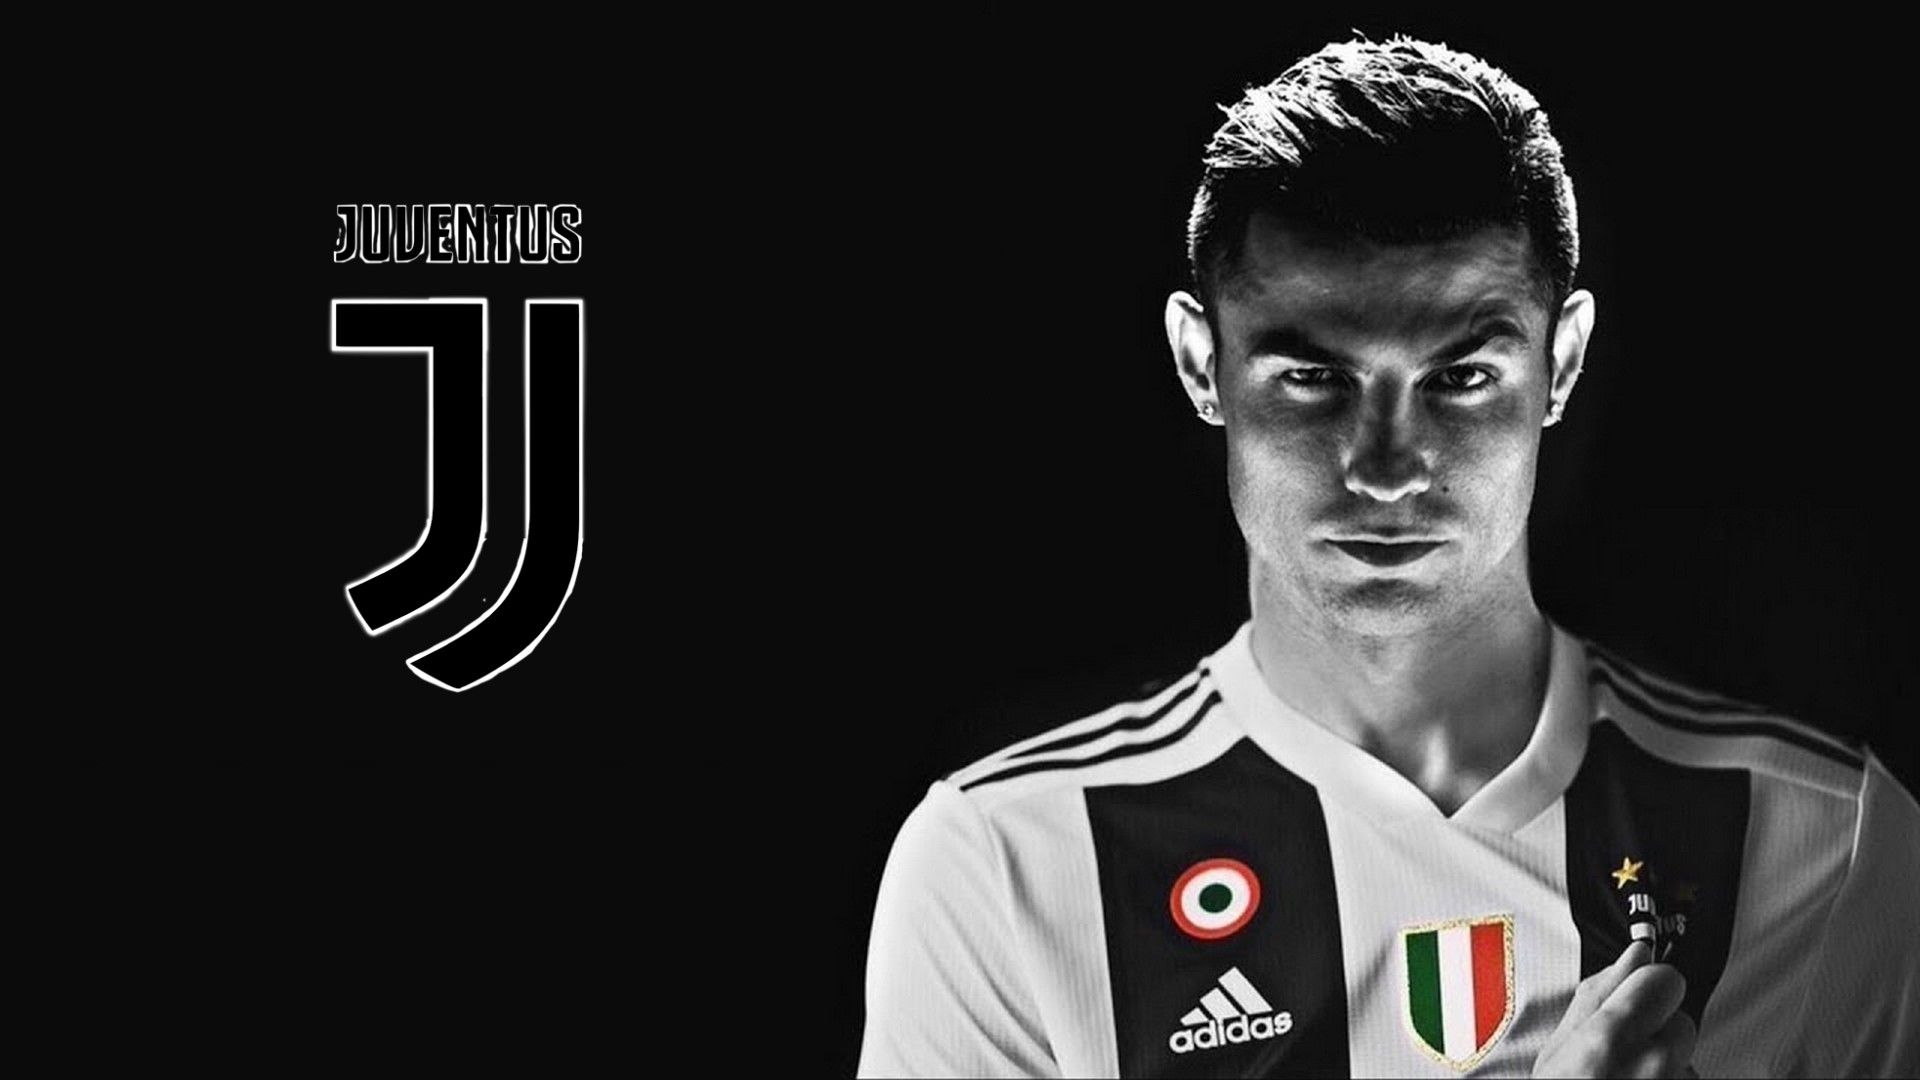 cristiano ronaldo juventus wallpaper with resolution 1920x1080 pixel you can make this wallpaper cristiano ronaldo juventus ronaldo juventus cristiano ronaldo cristiano ronaldo juventus wallpaper